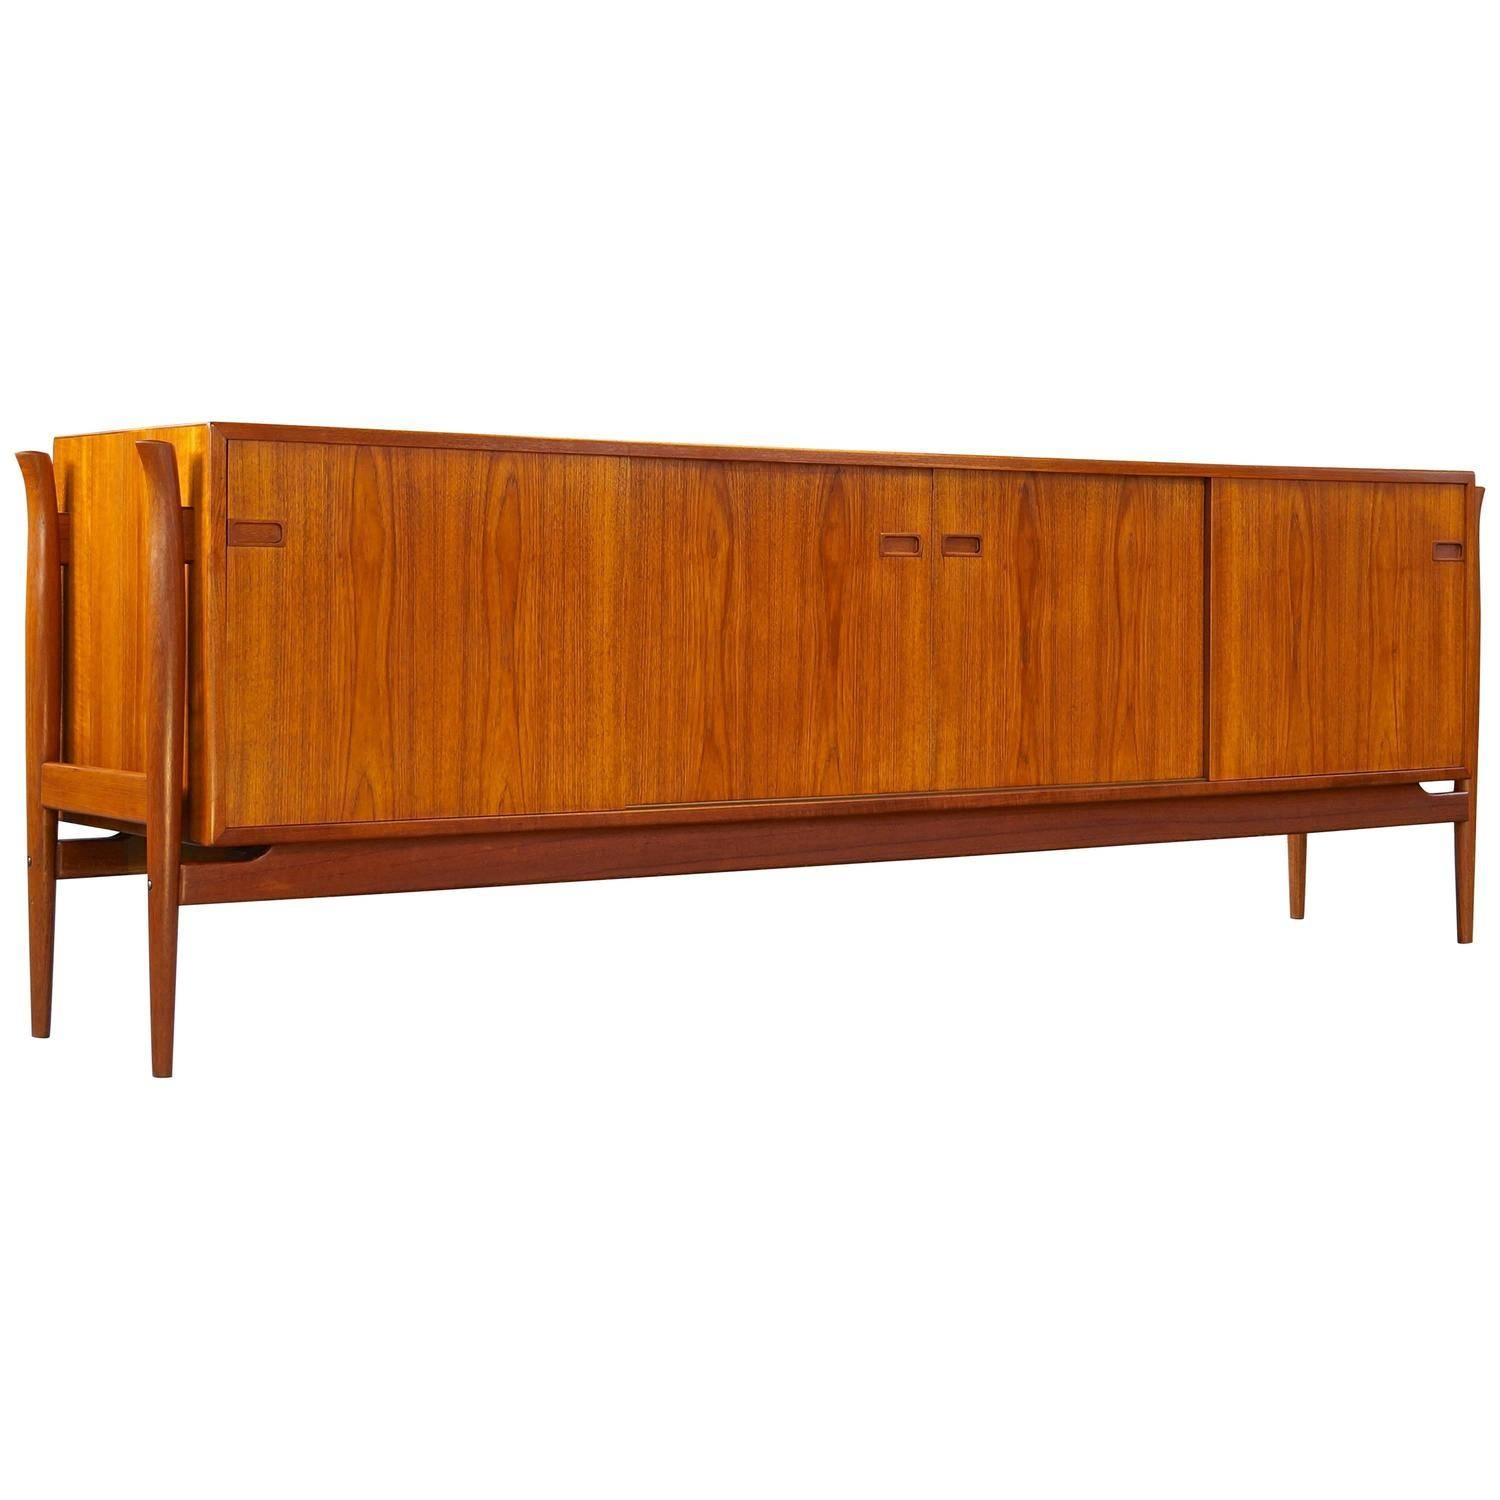 Vintage Danish Teak Sideboard Or Credenza, Extra Long And Low Regarding Long Low Sideboards (View 14 of 15)